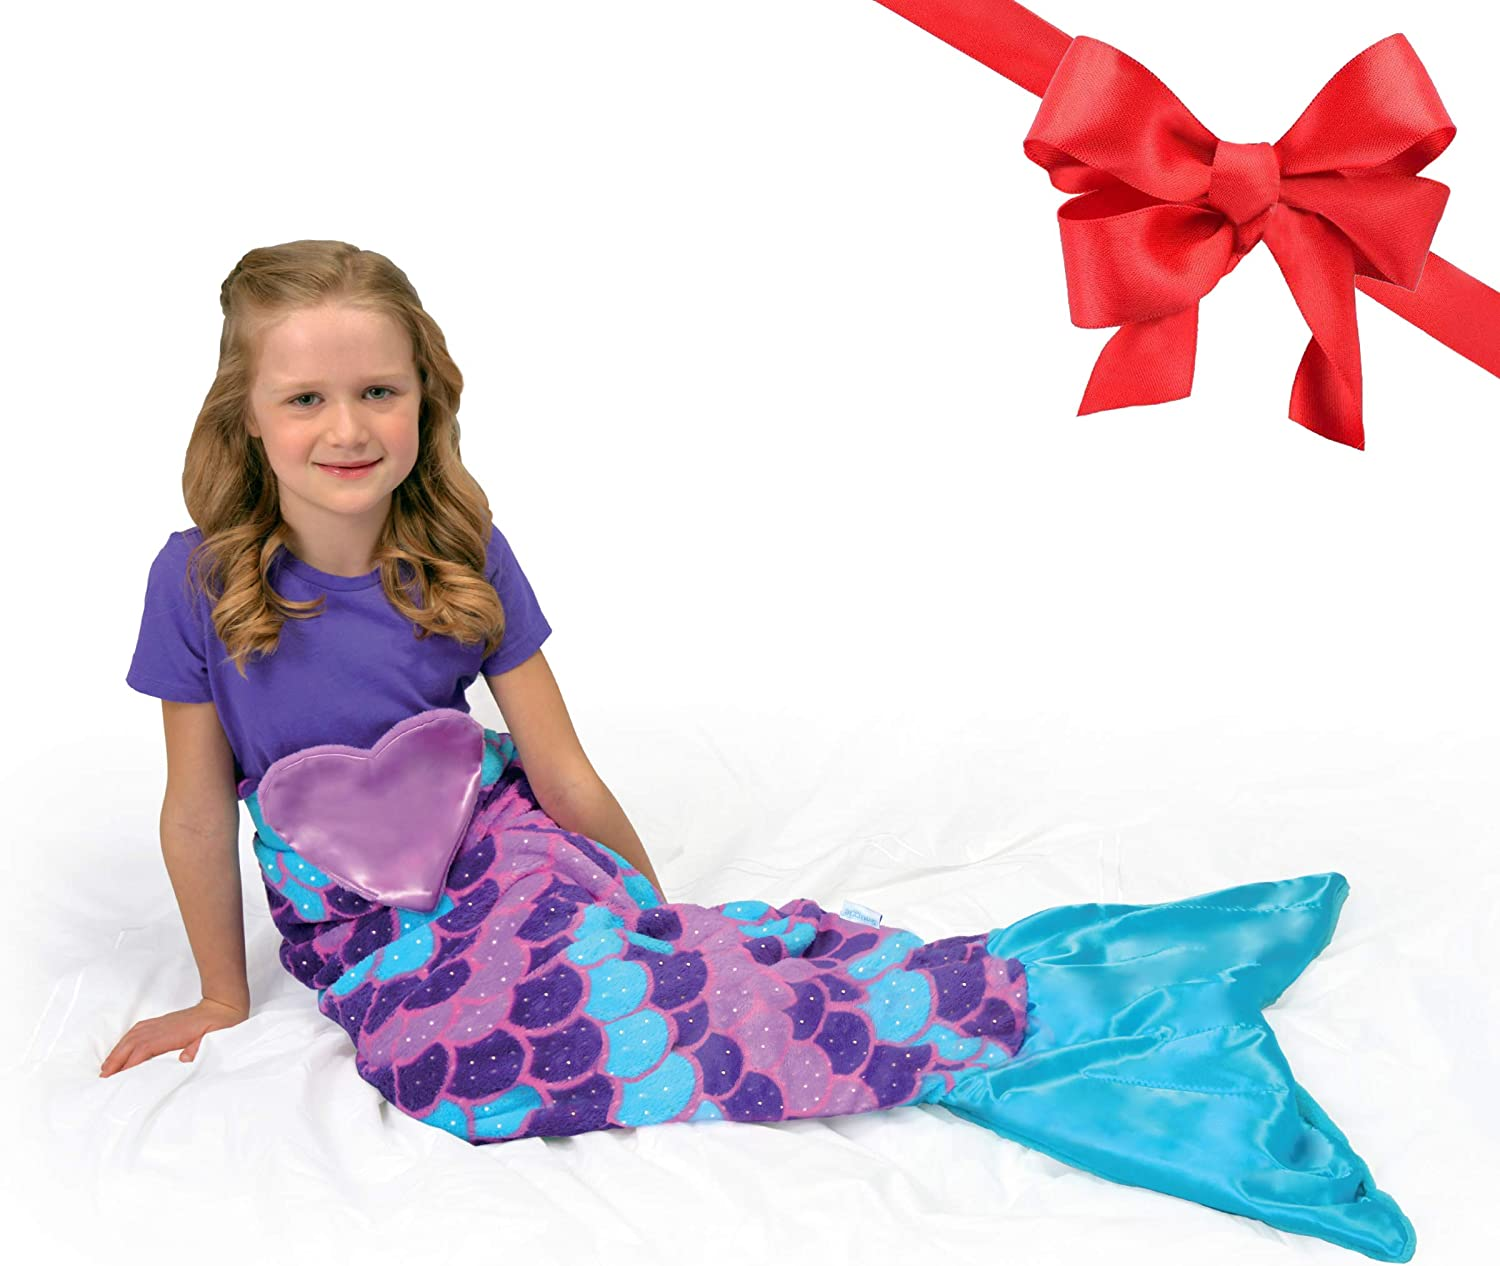 Amazon Com Snuggie Tails Mermaid Blanket Comfy Cozy Super Soft Warm All Season Wearable Blanket For Kids As Seen On Tv Purple Home Kitchen